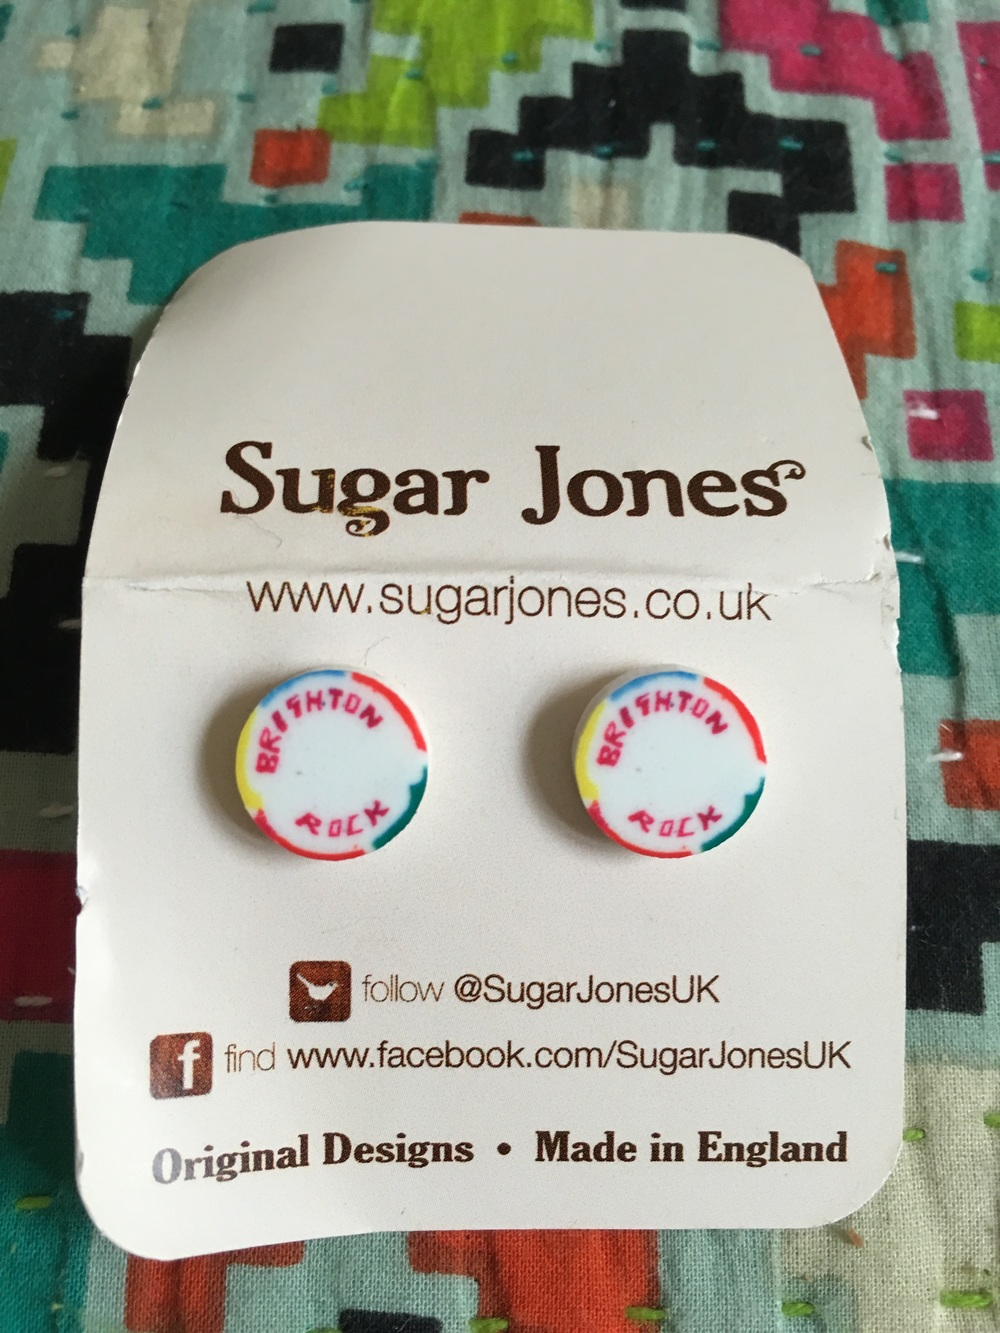 Day 14 & Brighton Rock earrings from Sugar Jones